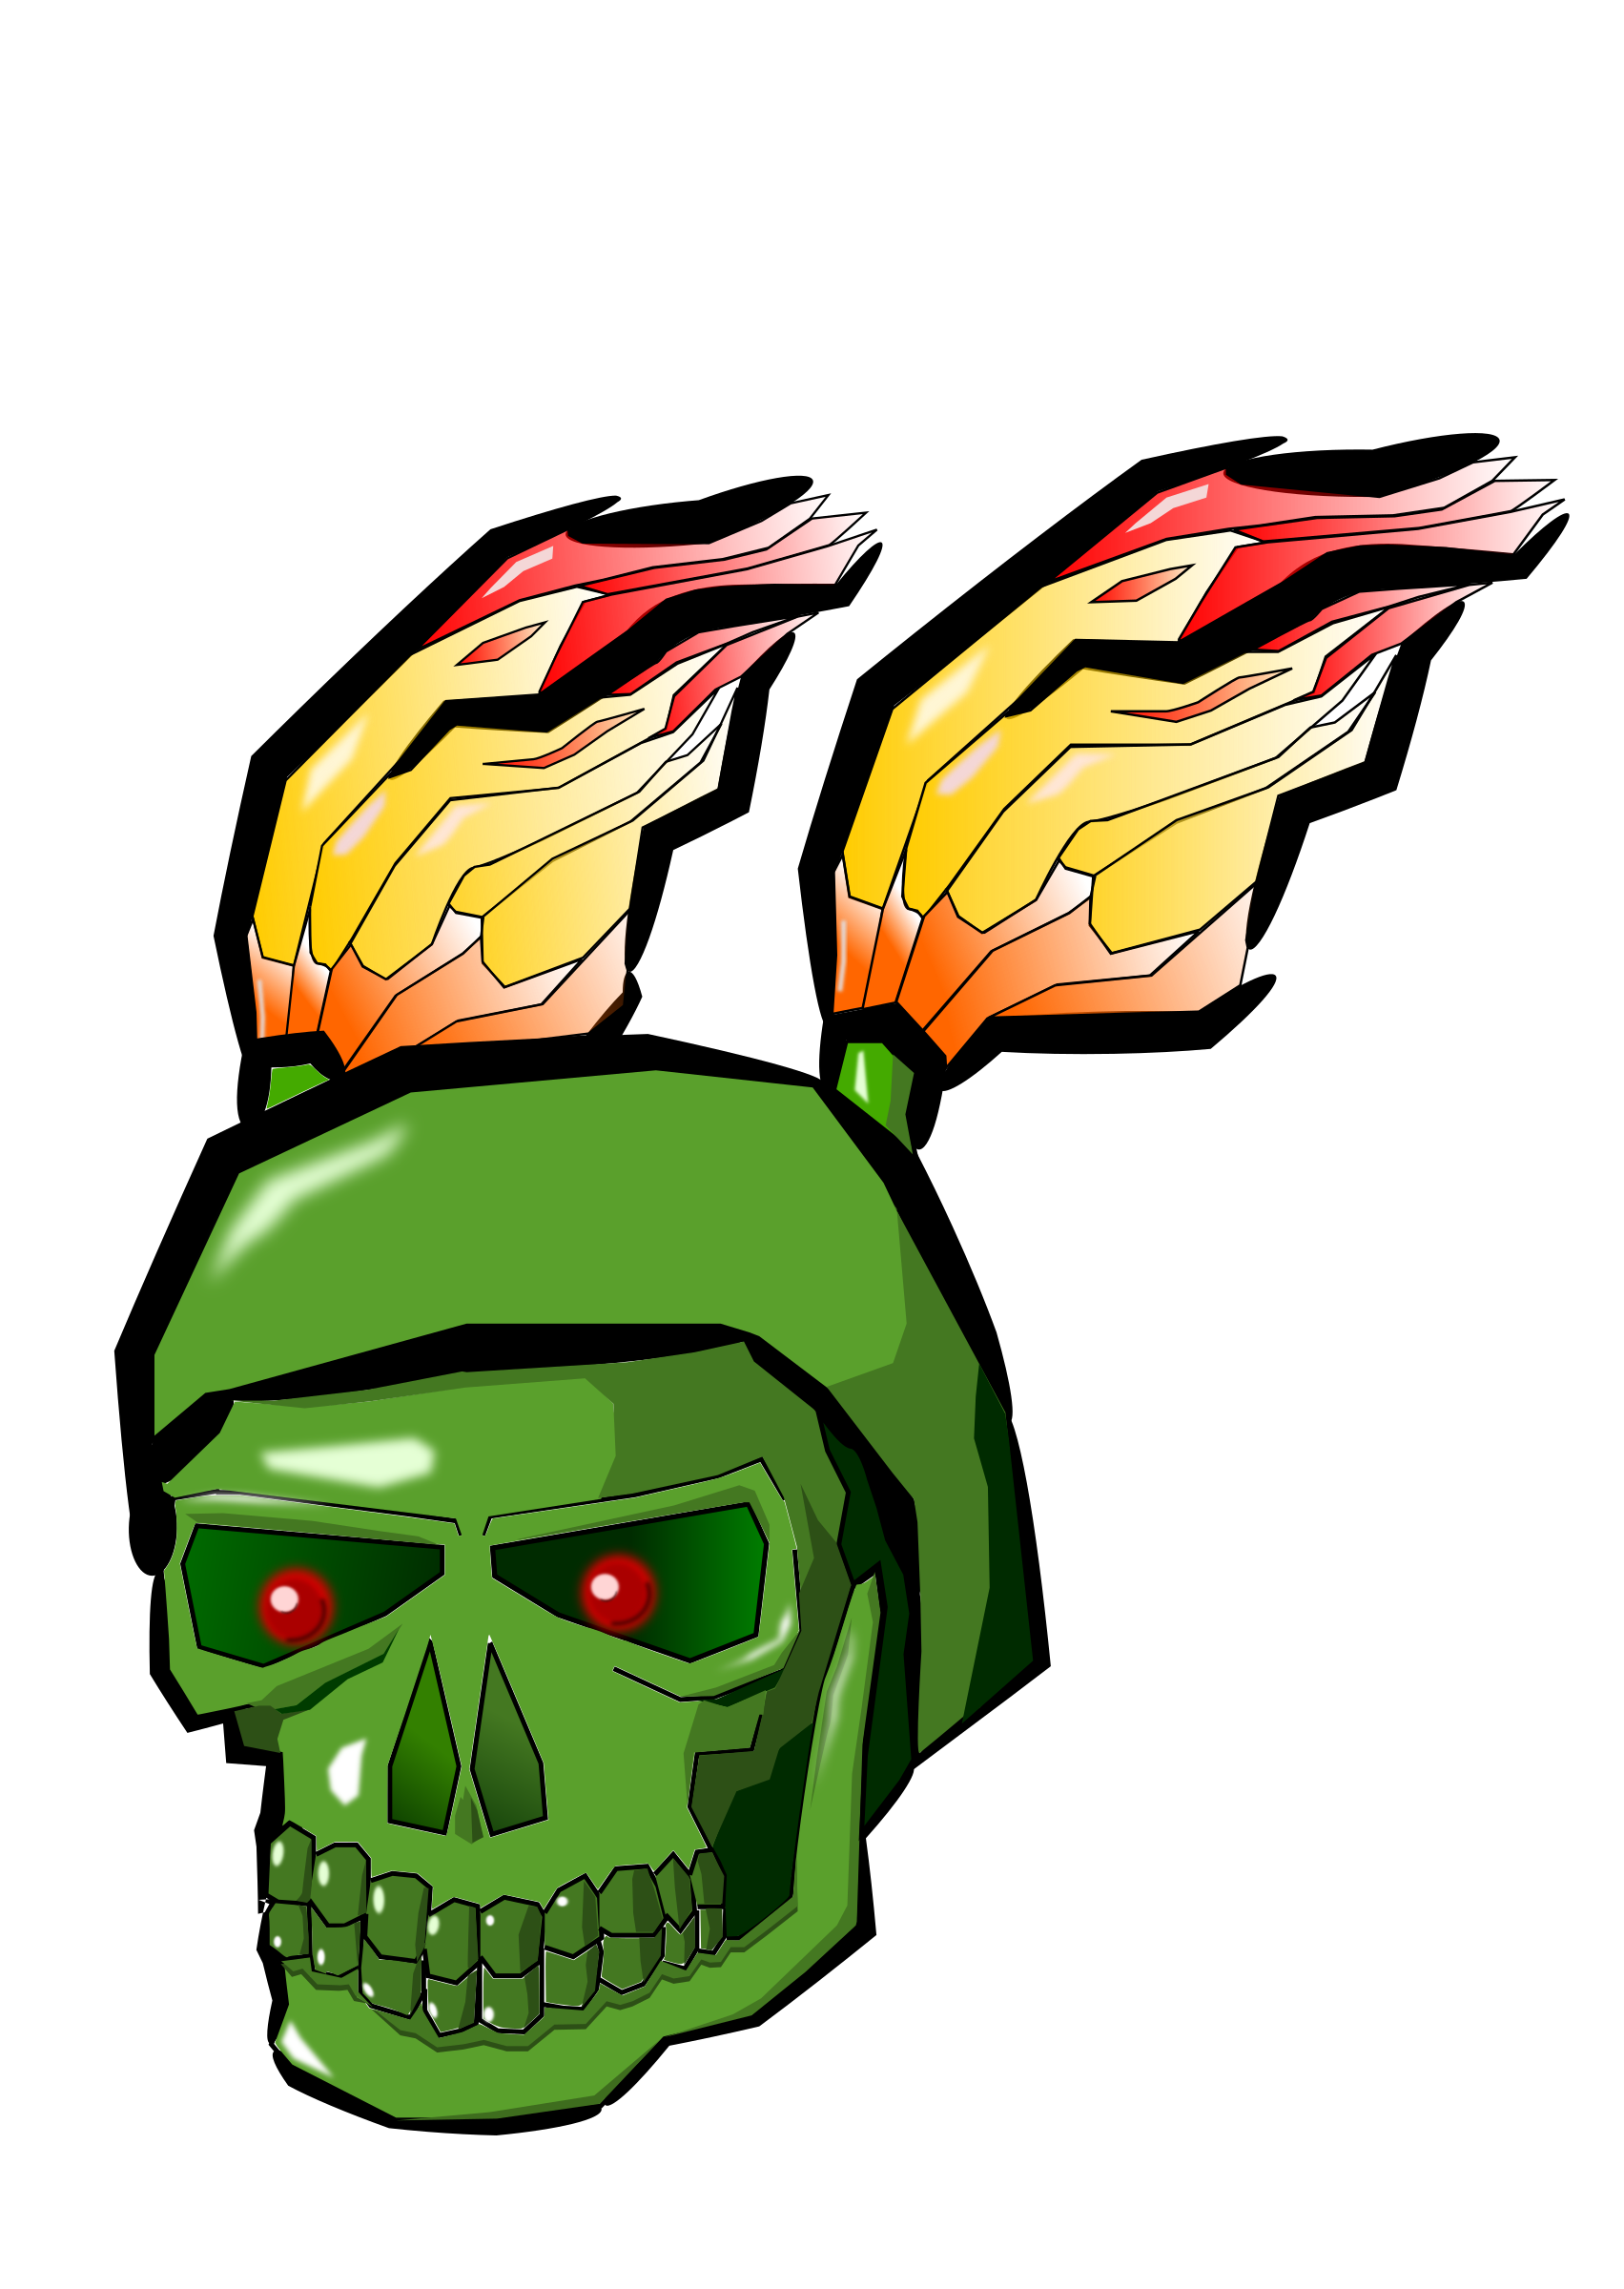 Green Skull with Flames by Rents